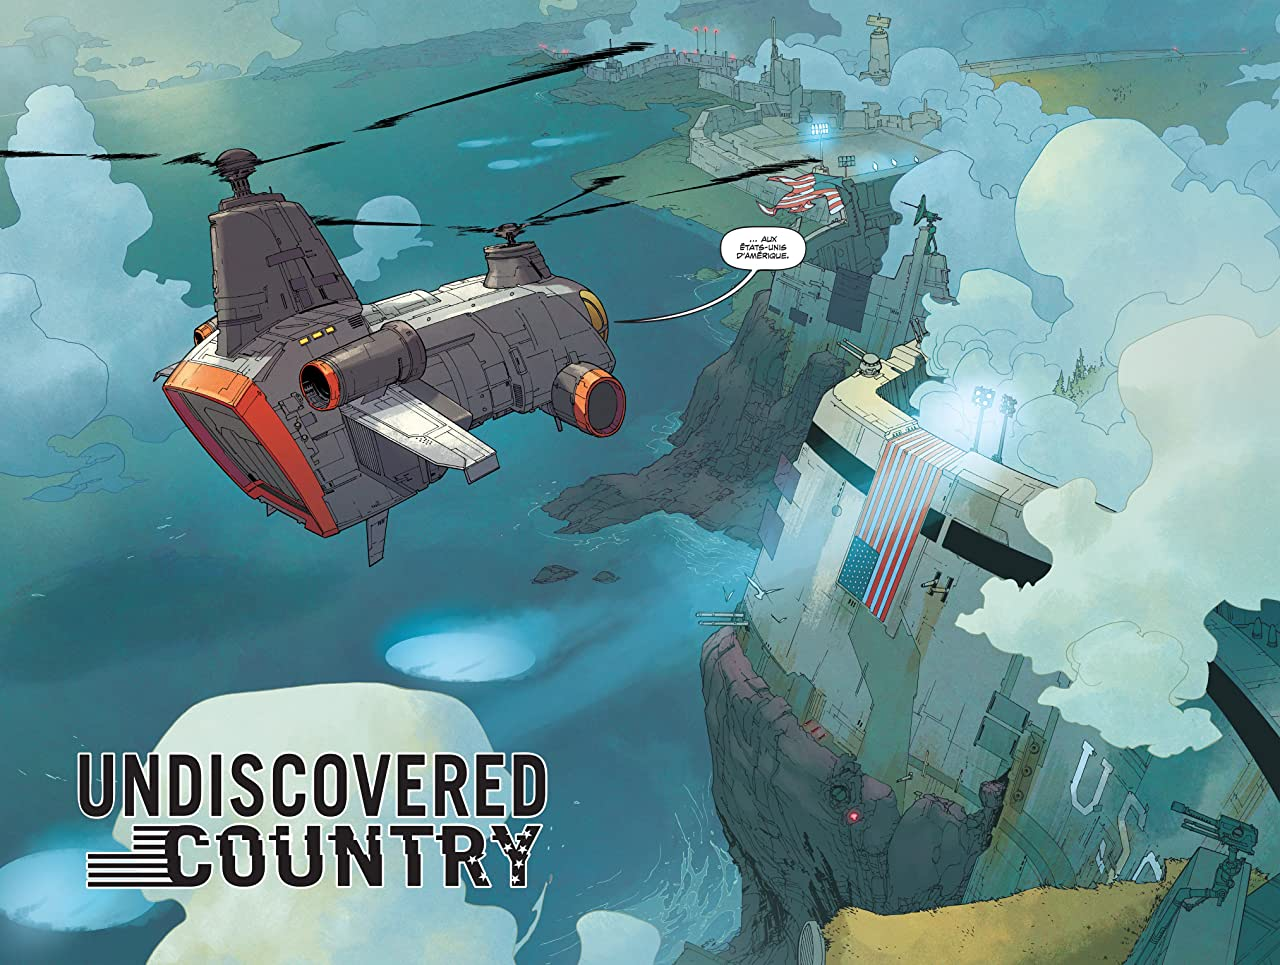 Undiscovered country Vol. 1